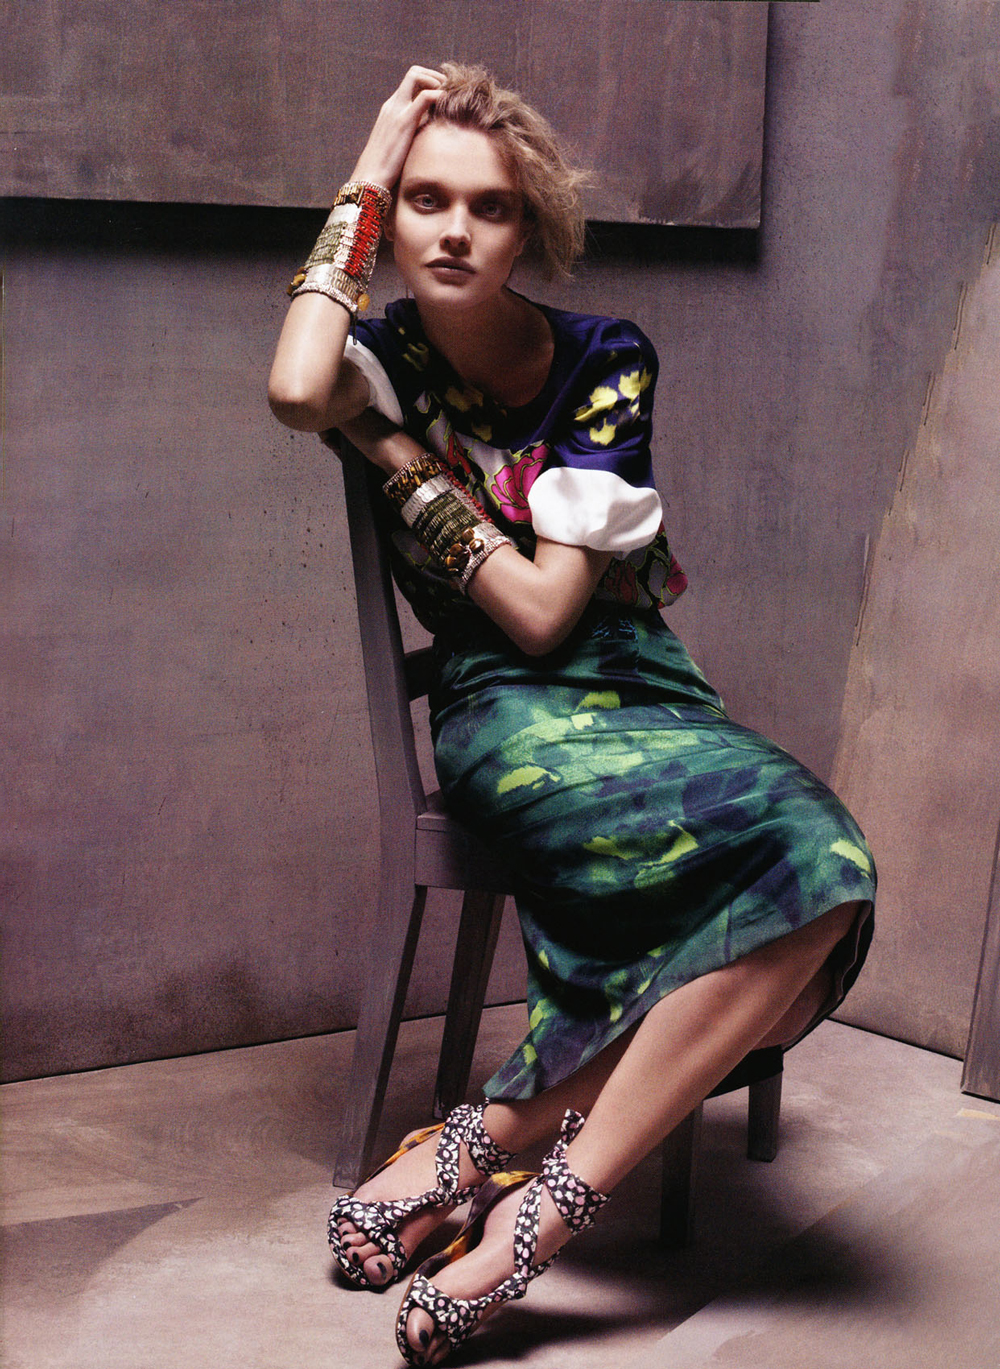 Peerless Natalia Vodianova wearing Dries van Noten in Vogue US January 2008 (photography: Steven Meisel, styling: Grace Coddington) via www.fashionedbylove.co.uk